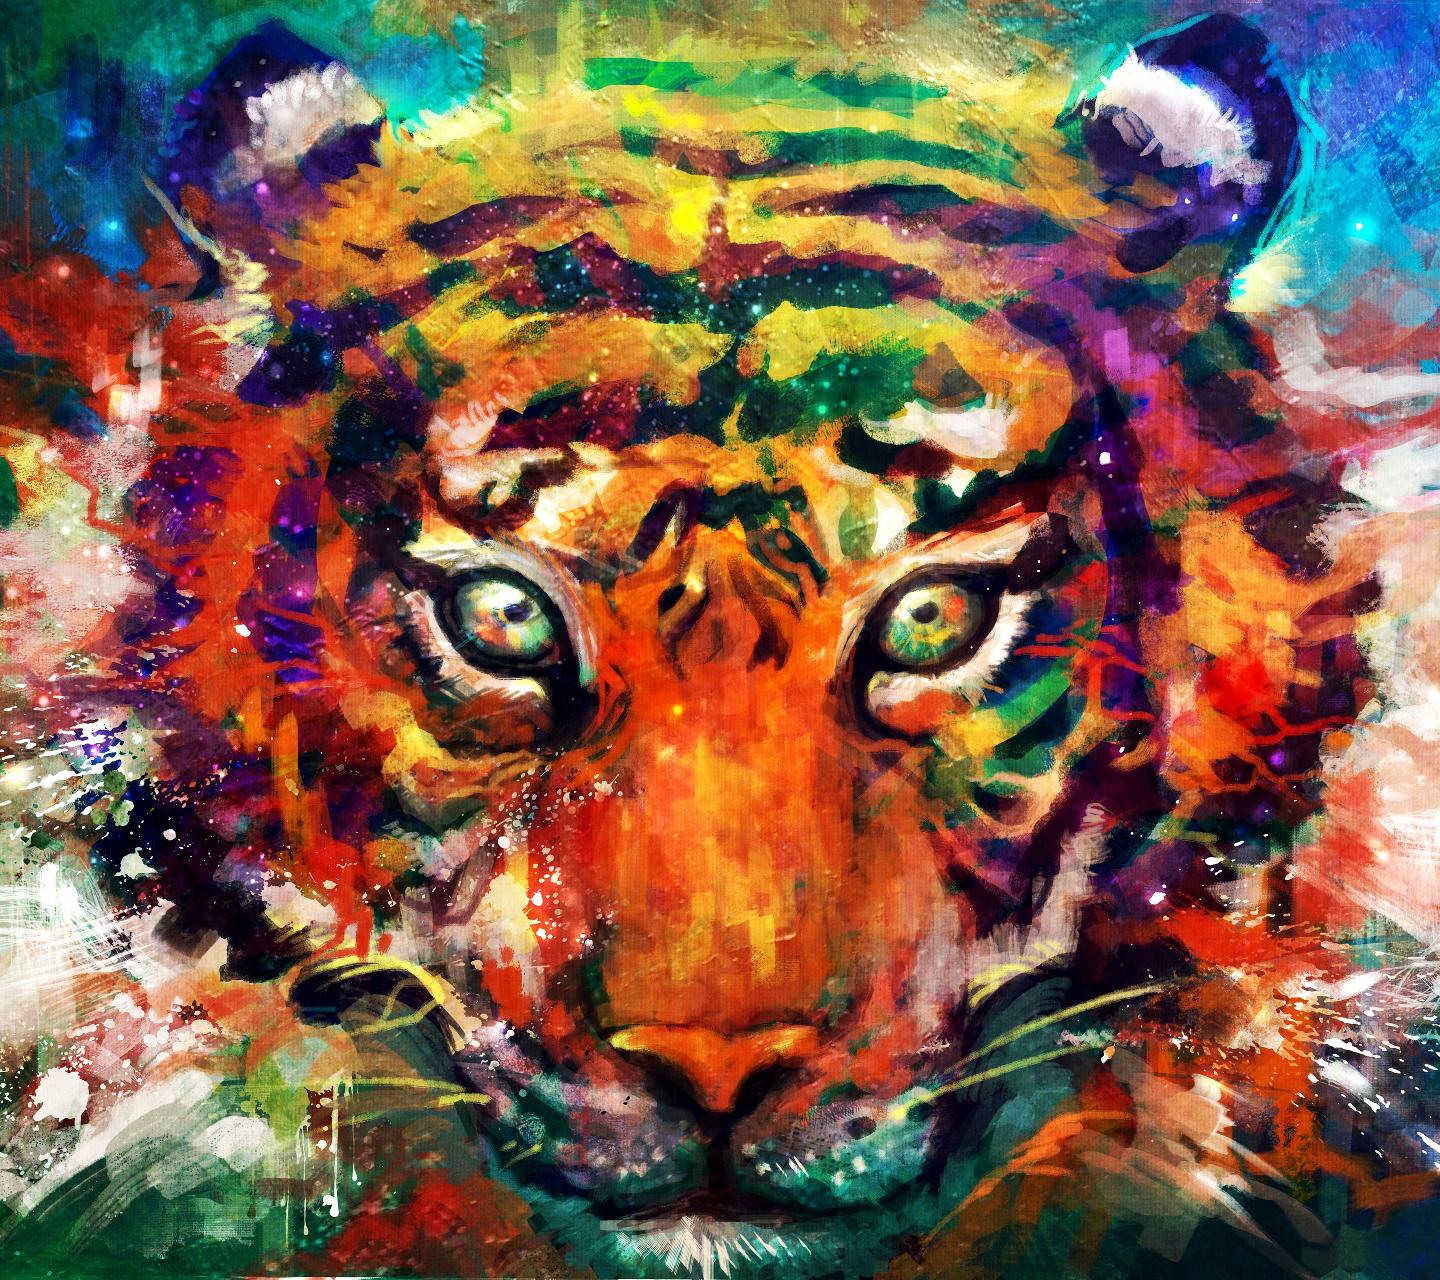 1440x1280 Trippy Tiger wallpaper by at1988 • ZEDGE™ - free your phone